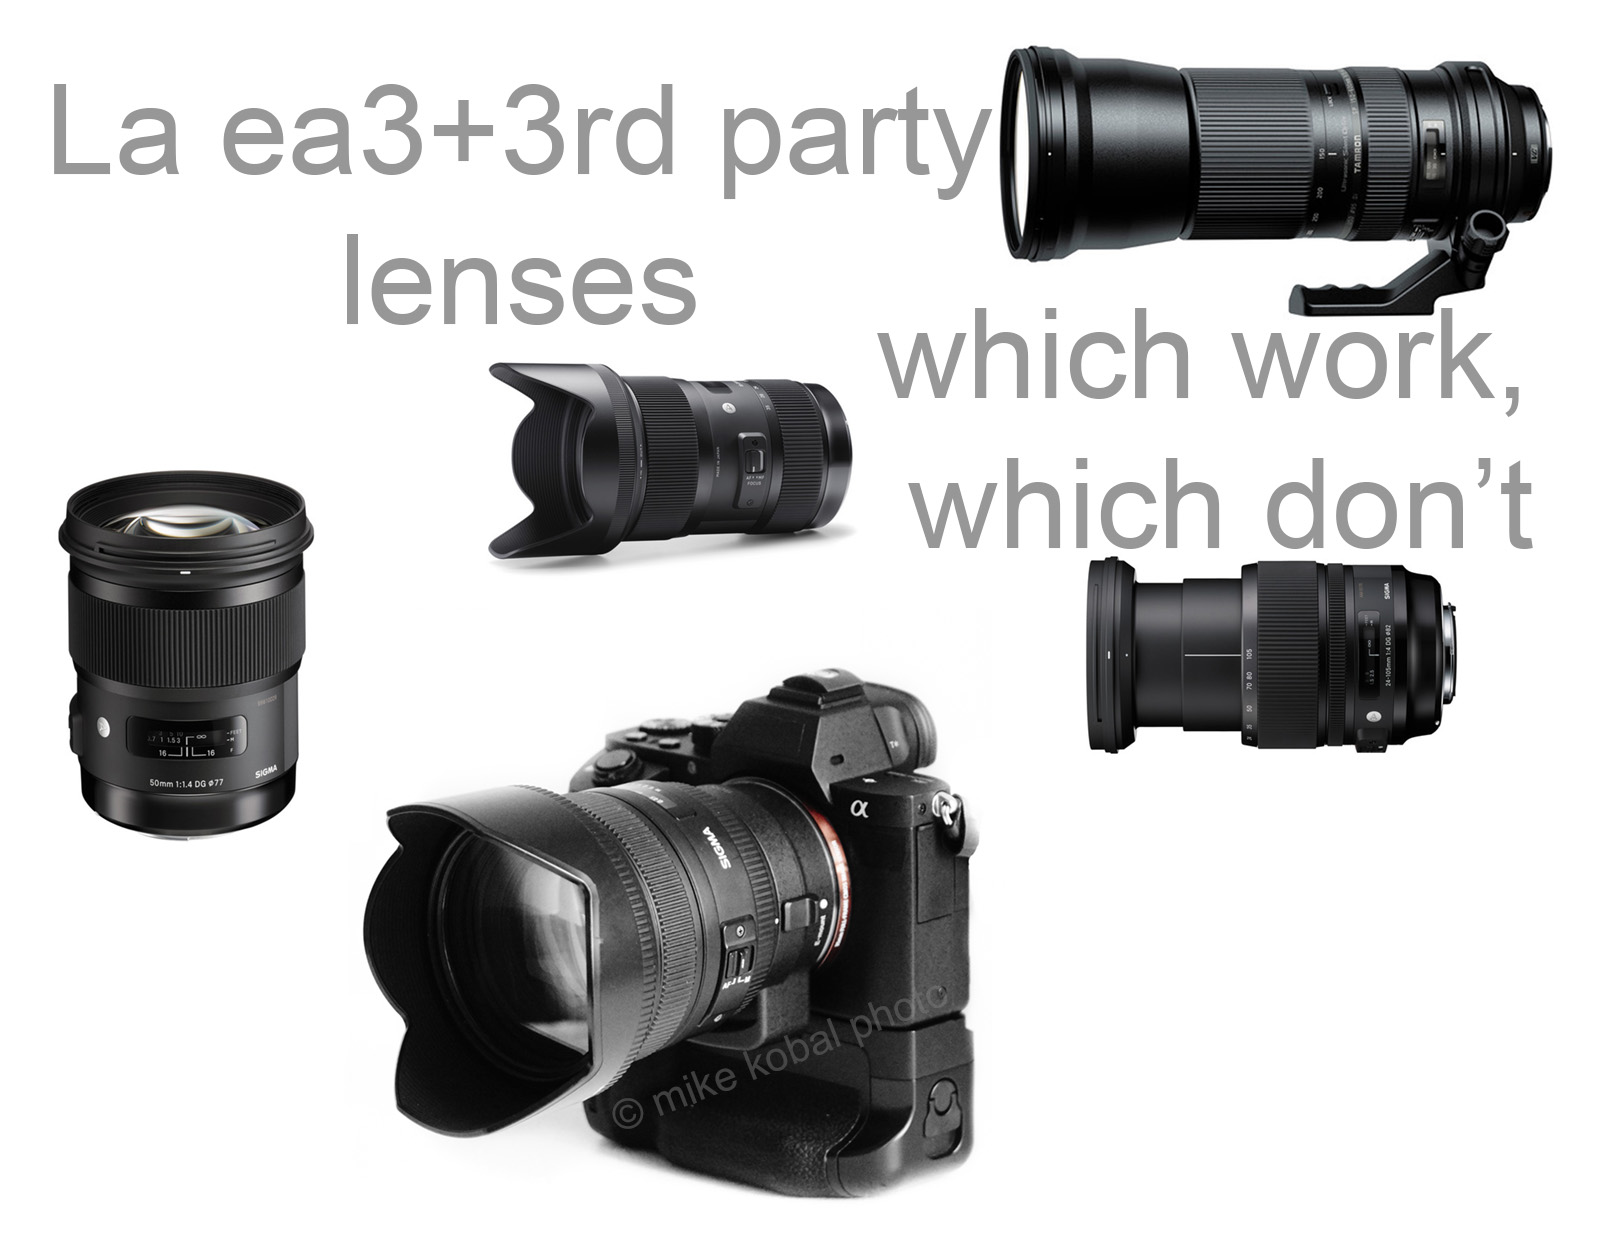 3rdparty_lenses_a7r2